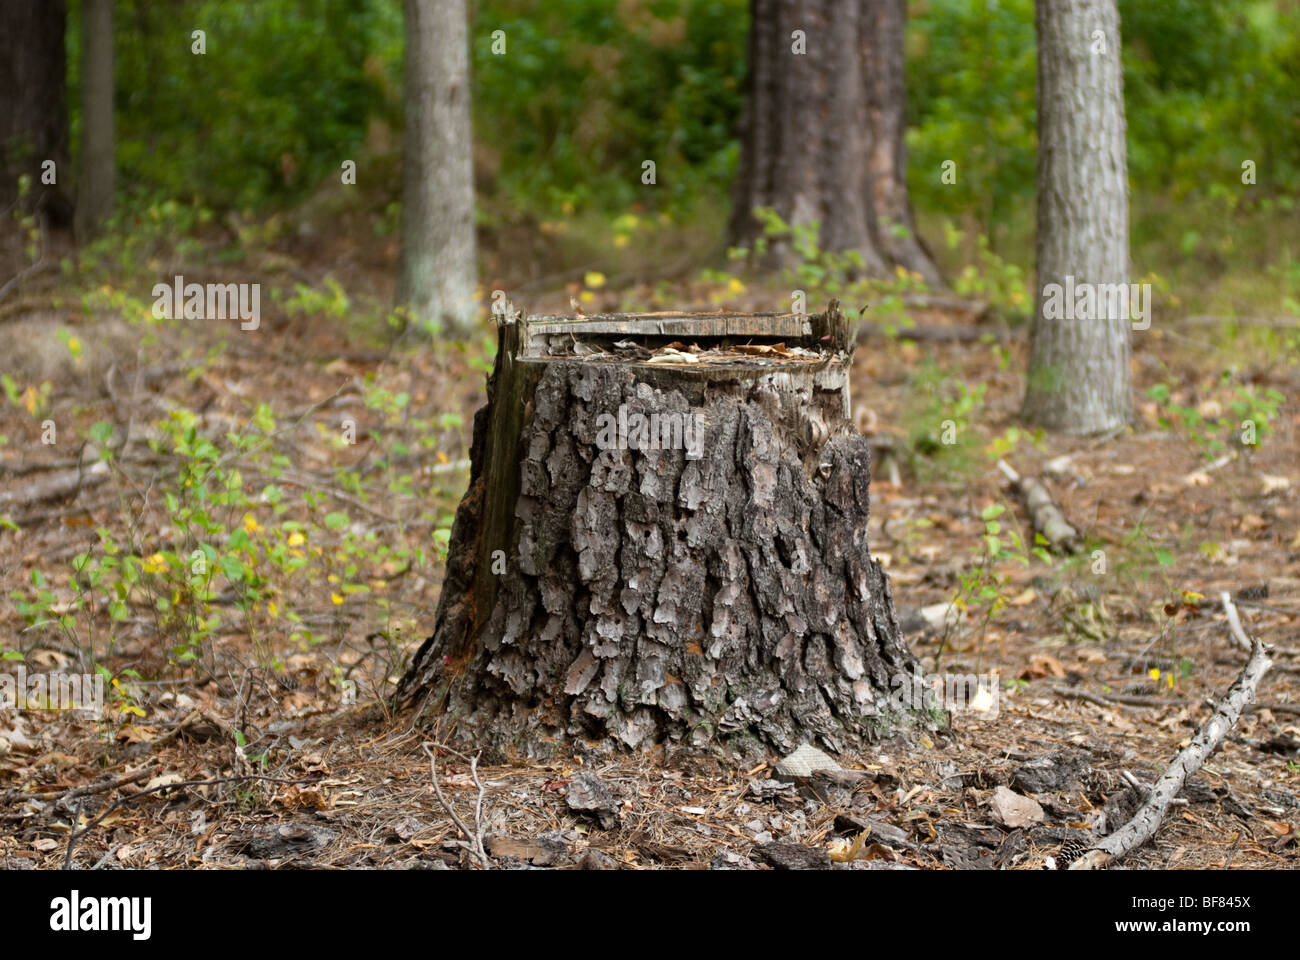 Tree stump in forest - Stock Image